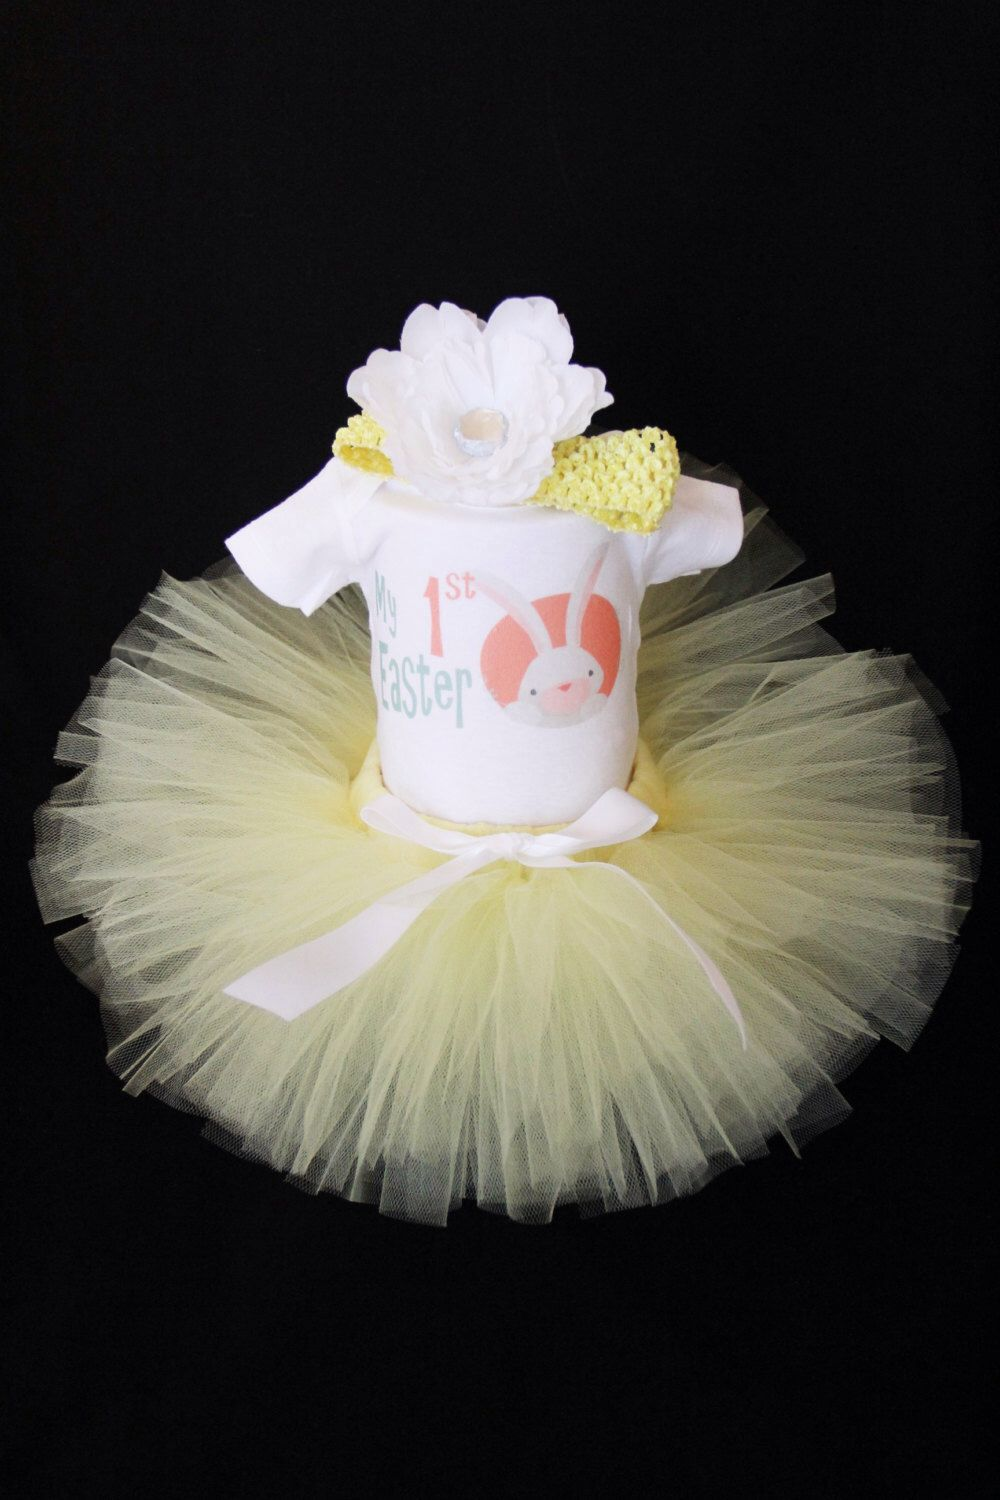 My First Easter Tutu Set - Baby's 1st Easter Bodysuit - First Easter Outfit - Easter Bunny Tutu Set - Easter Bunny  - EAHP1532 by EleventhHourDesigns on Etsy https://www.etsy.com/listing/222338455/my-first-easter-tutu-set-babys-1st